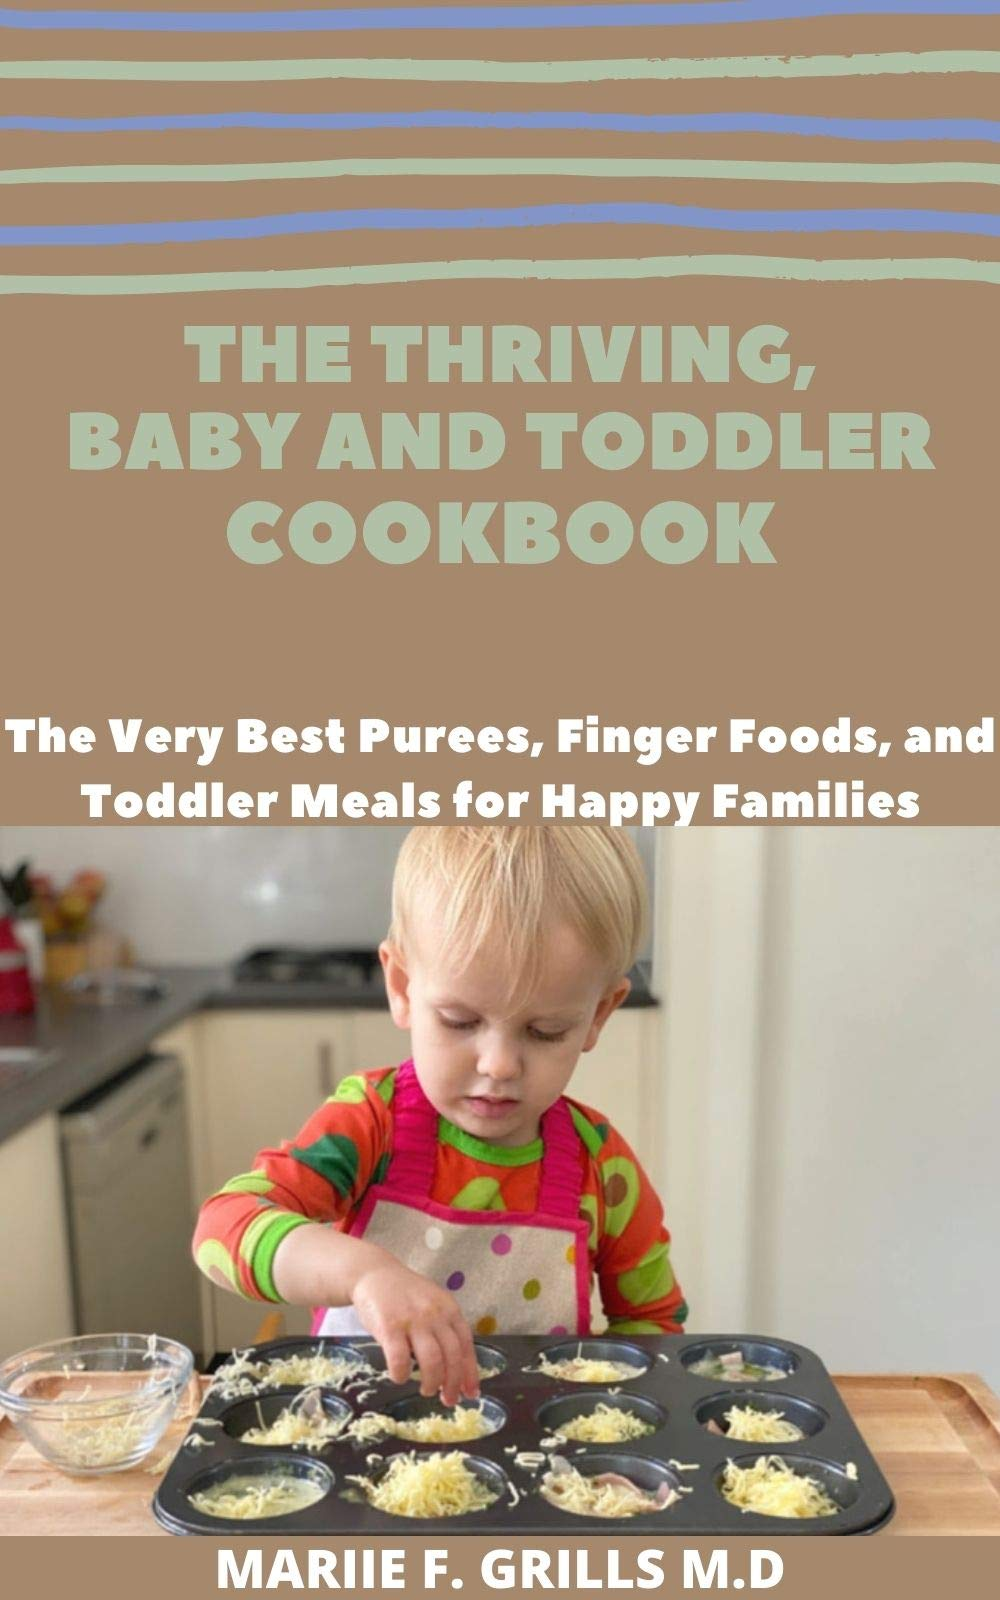 THE THRIVING, BABY AND TODDLER COOKBOOK: The Very Best Purees, Finger Foods, and Toddler Meals for Happy Families